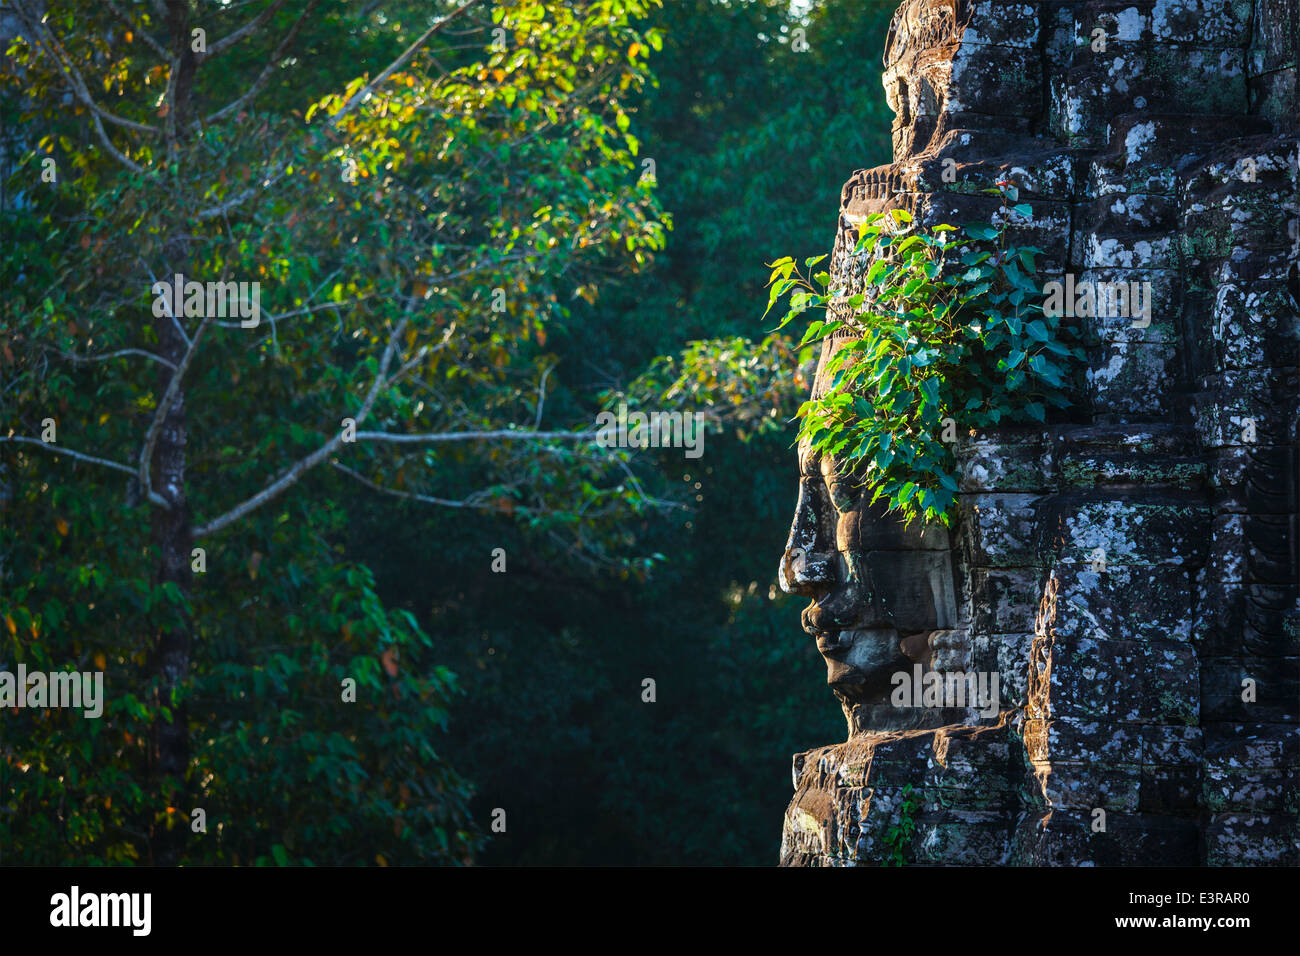 Ancient stone face of Bayon temple, Angkor, Cambodia with growing plants - Stock Image